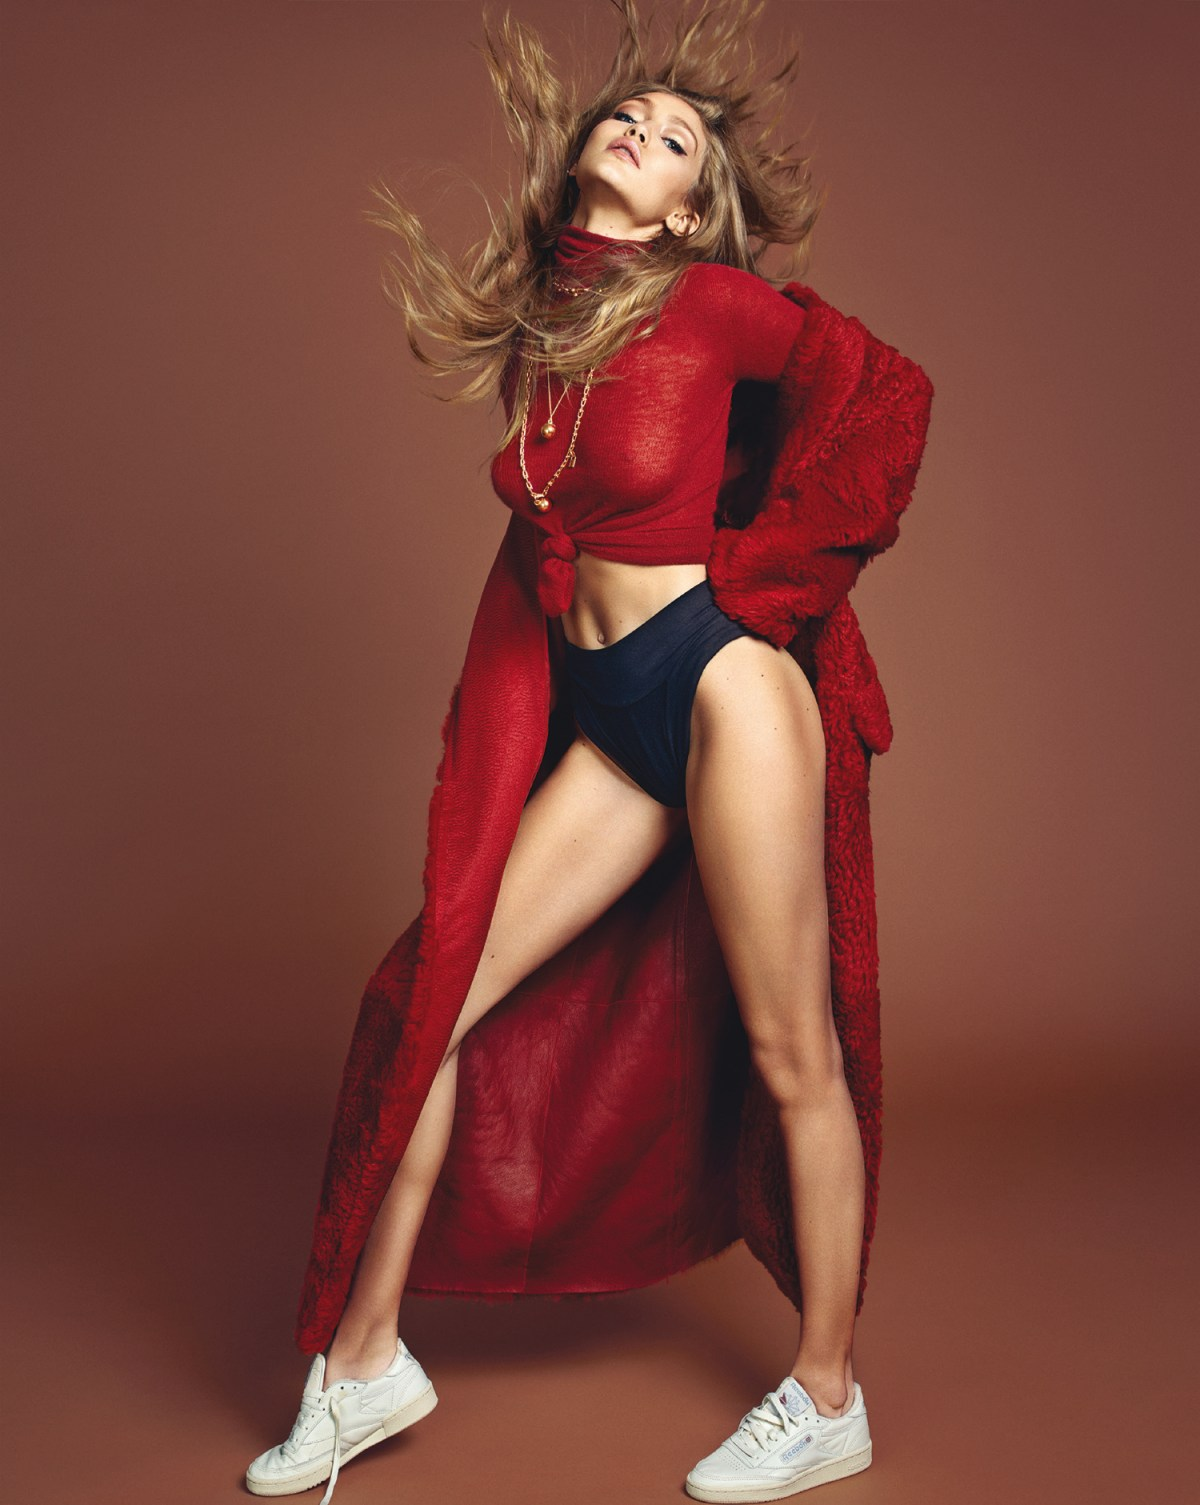 Gigi Hadid by Henrique Gendre for Vogue Korea